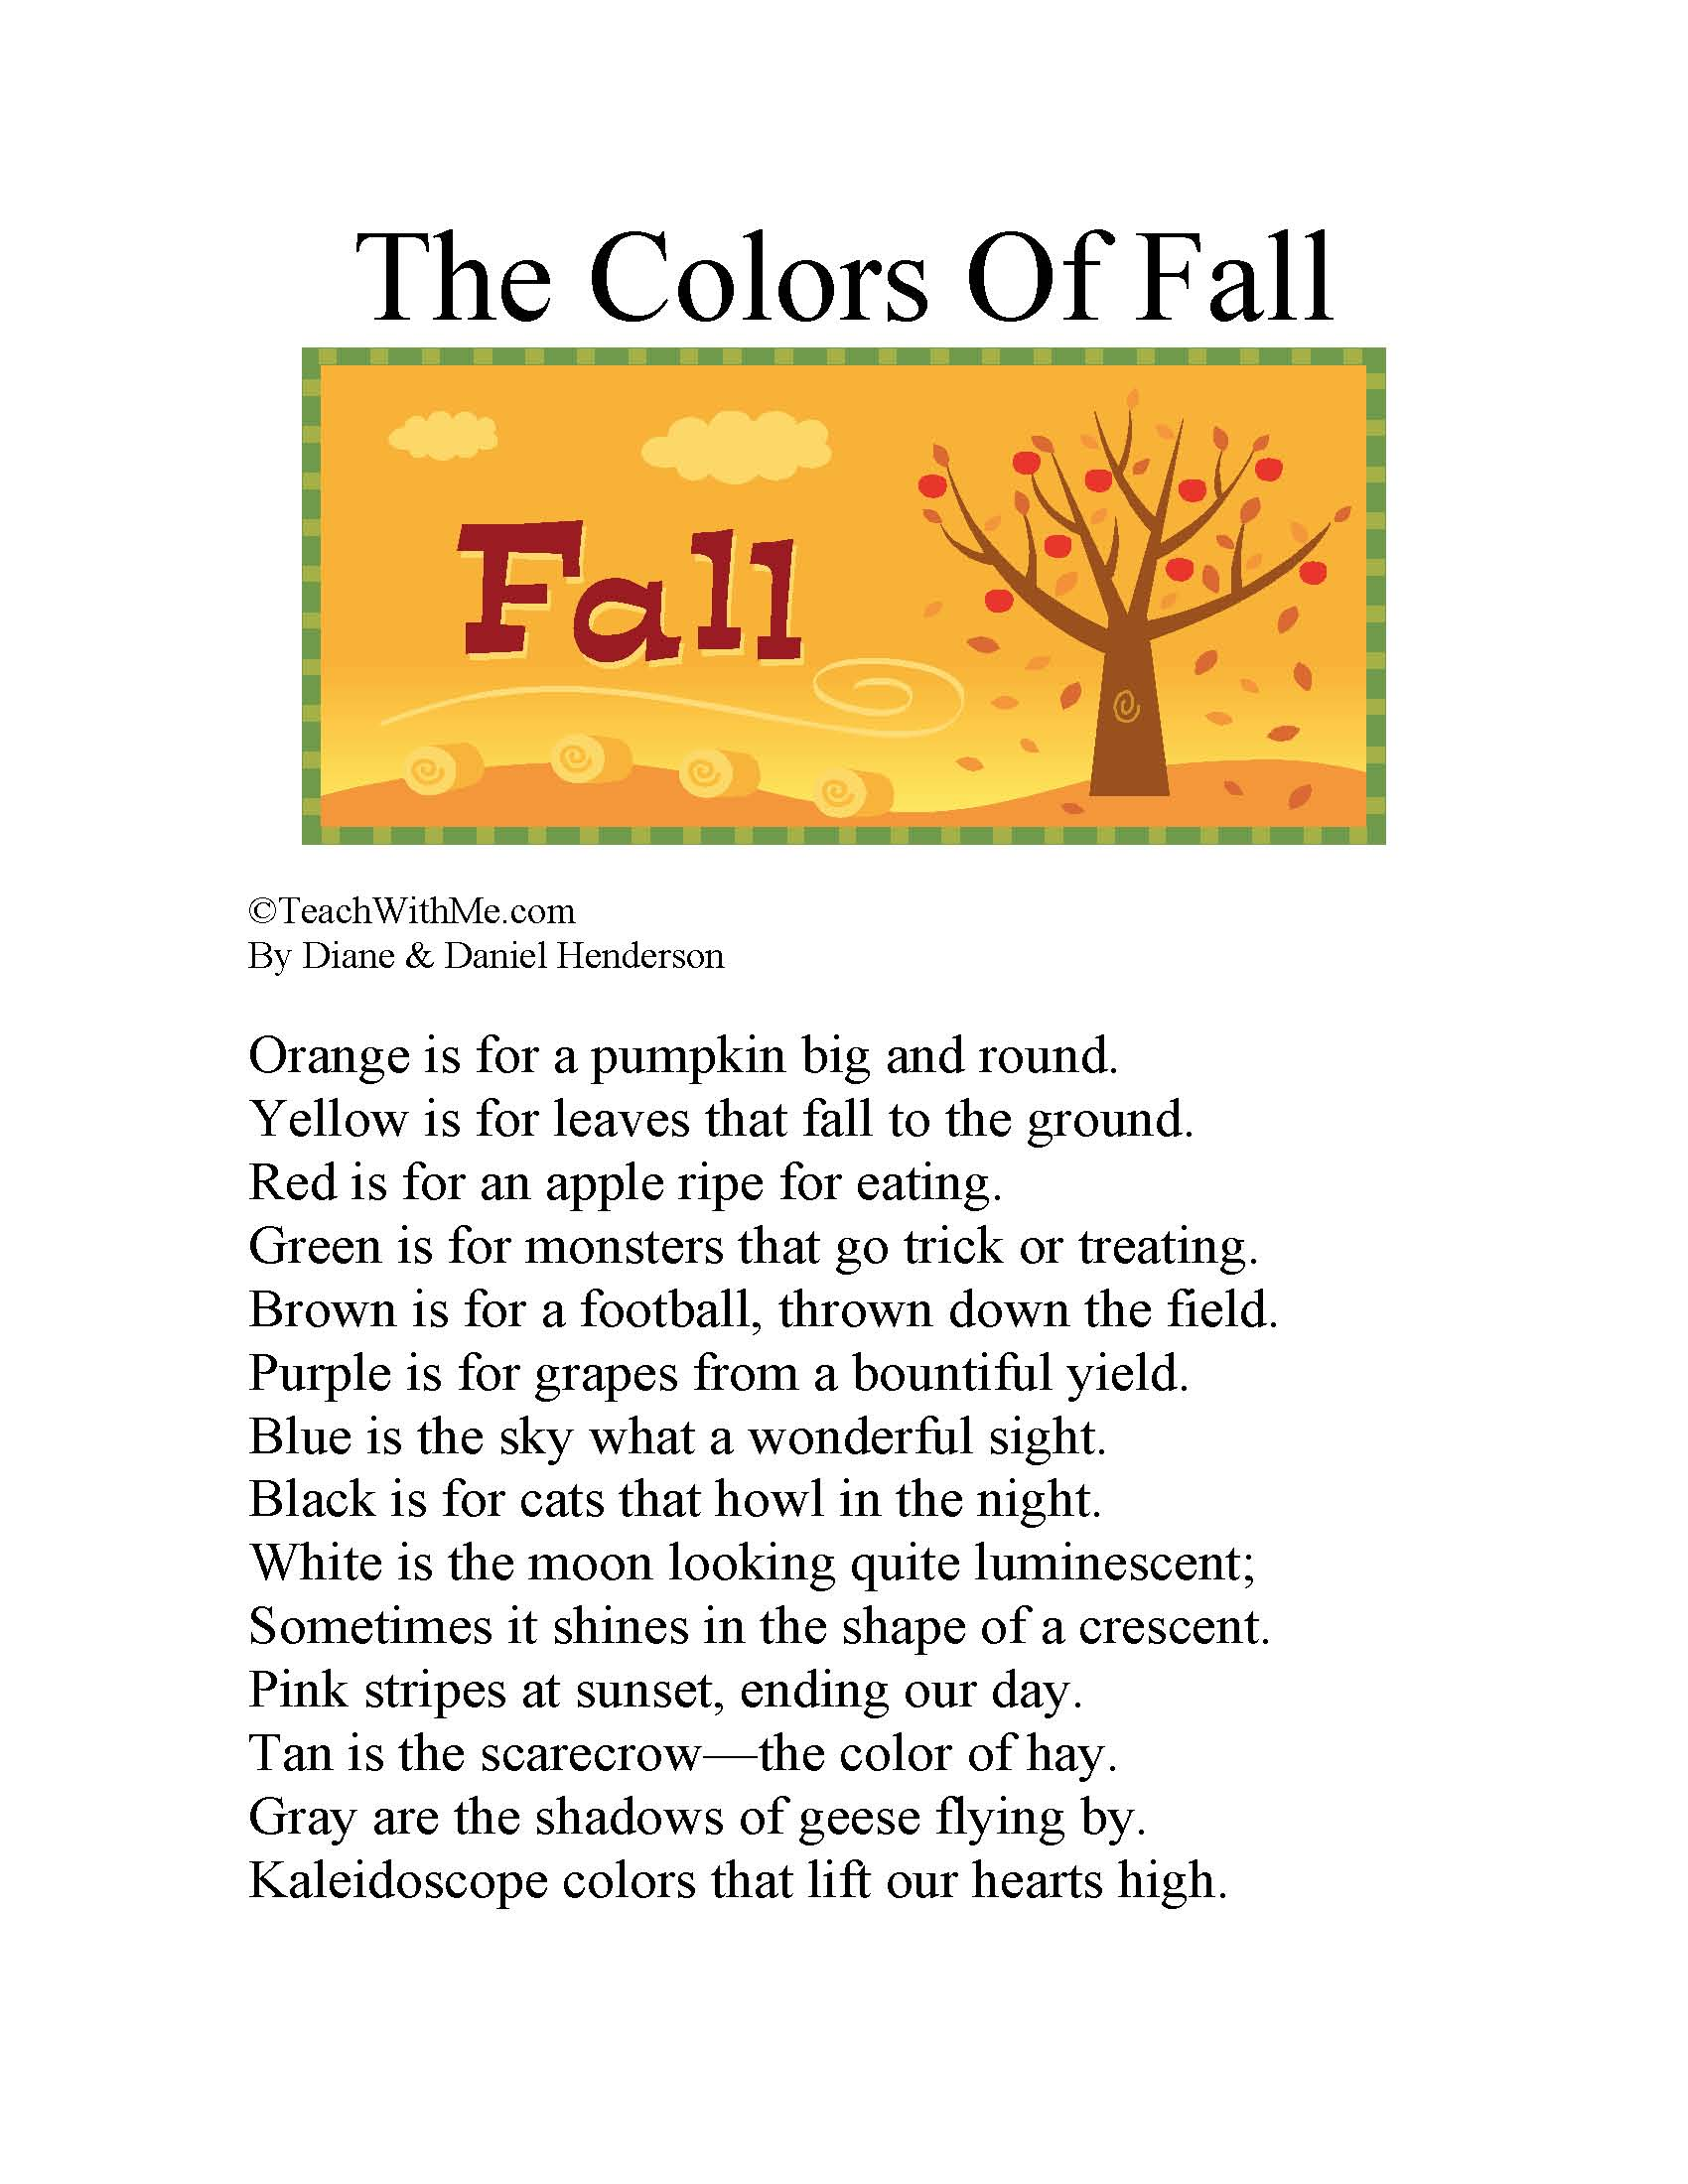 the colors of fall, color activities, color lessons, color ideas, color booklet, poetry lessons, poetry activities, rhyming activities, rhyming lessons, back to school activities, back to school lessons, lessons for the first week of school, lessons for fall,